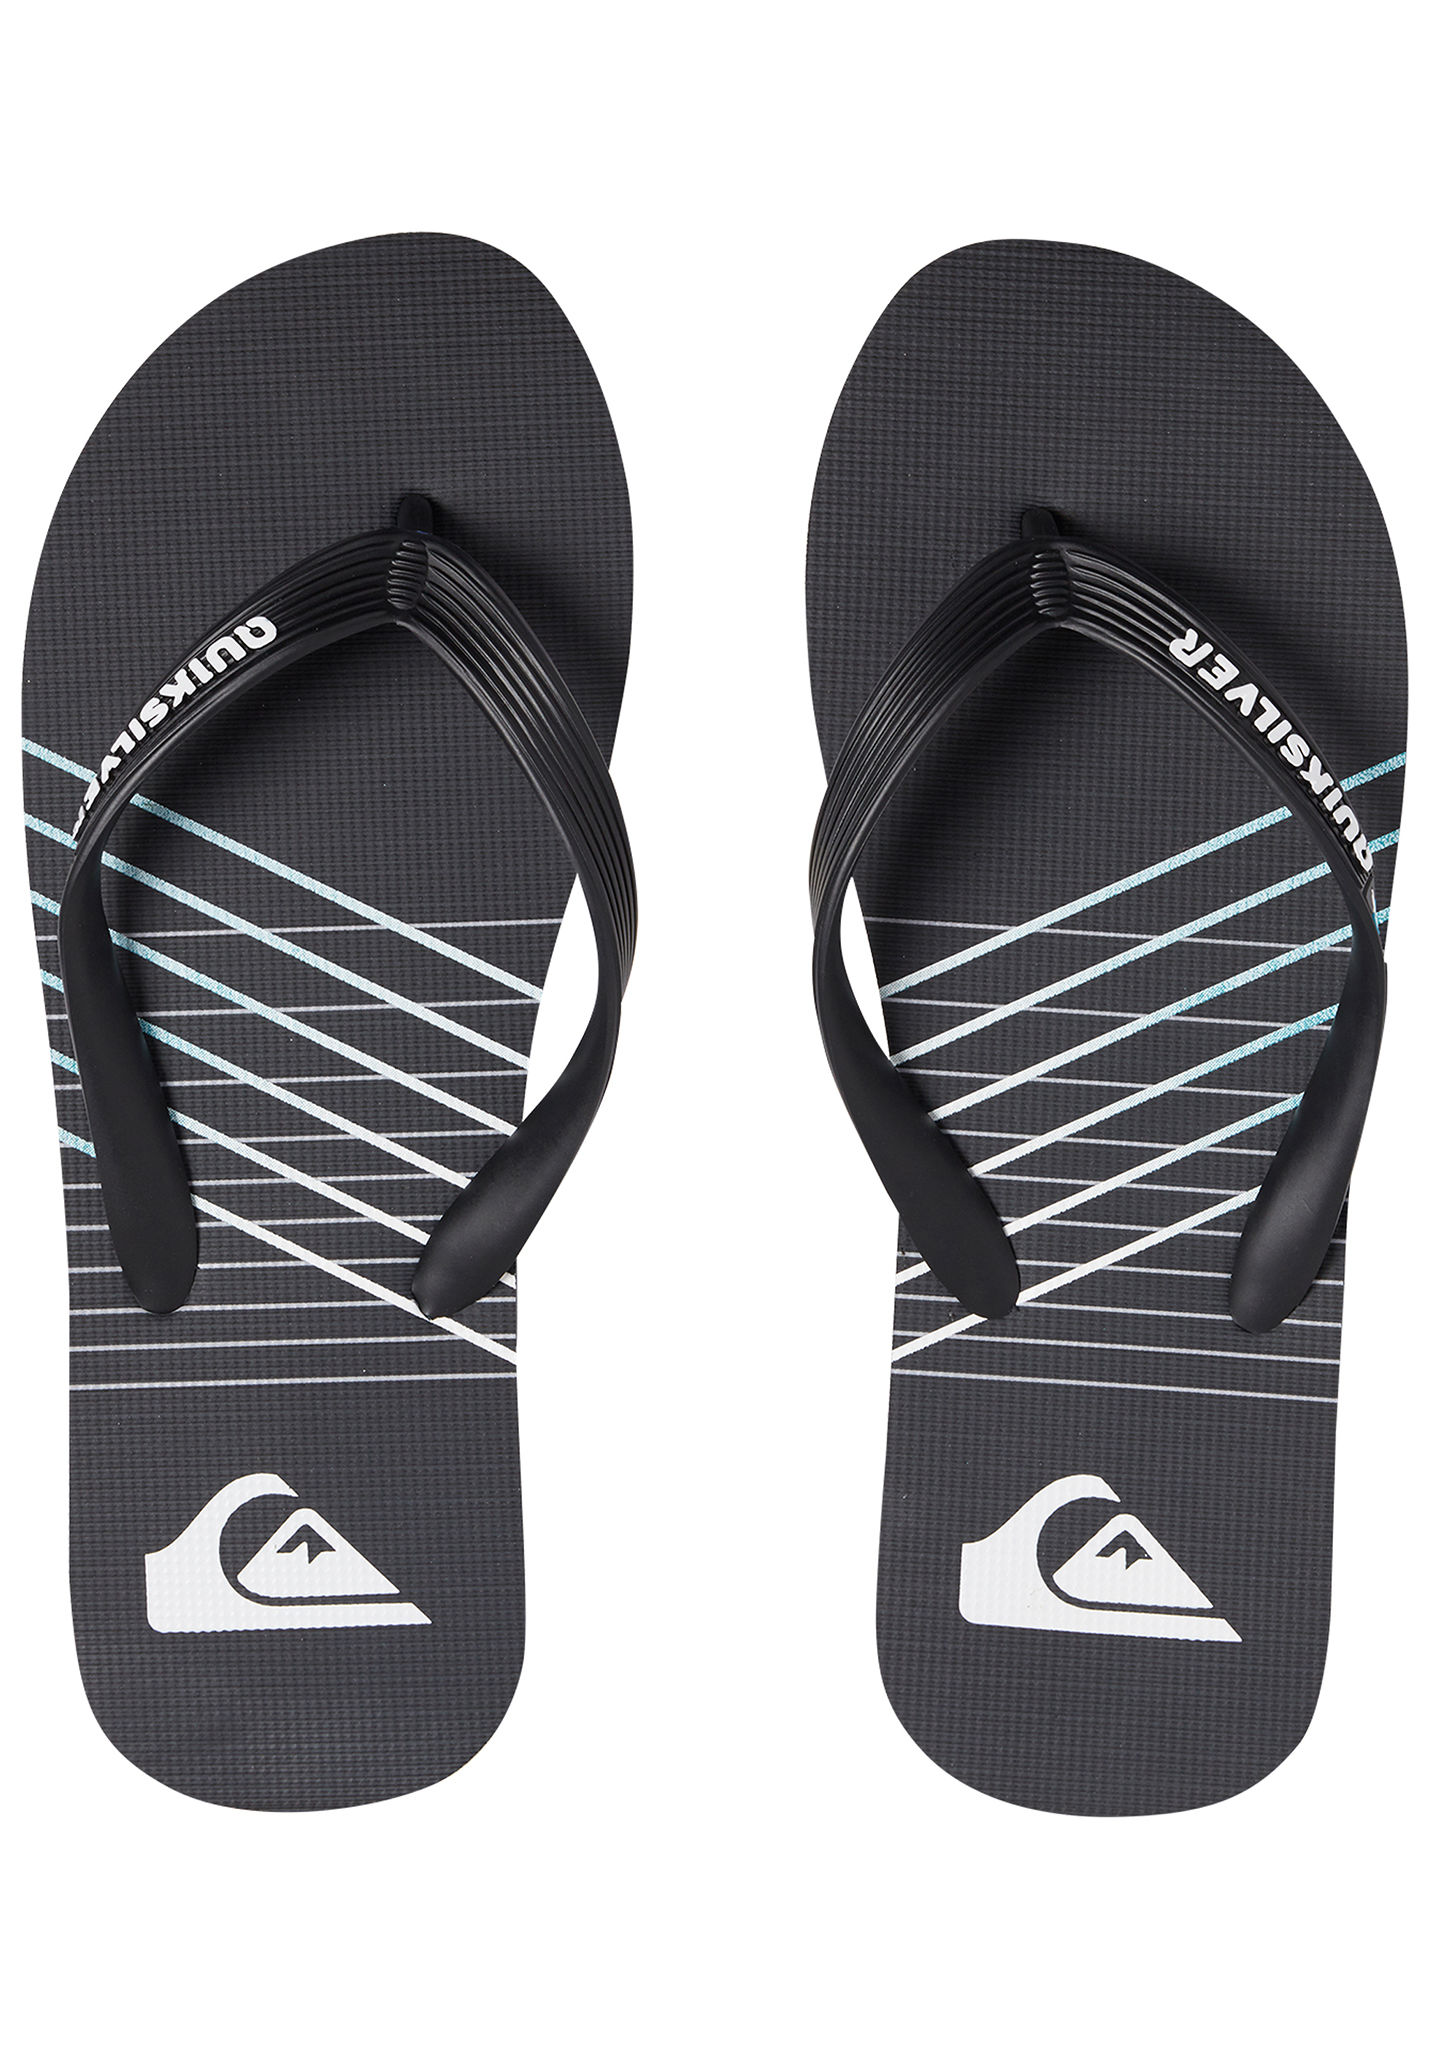 e675e305b208c7 Quiksilver Molokai Shibori - Sandals for Men - Black - Planet Sports